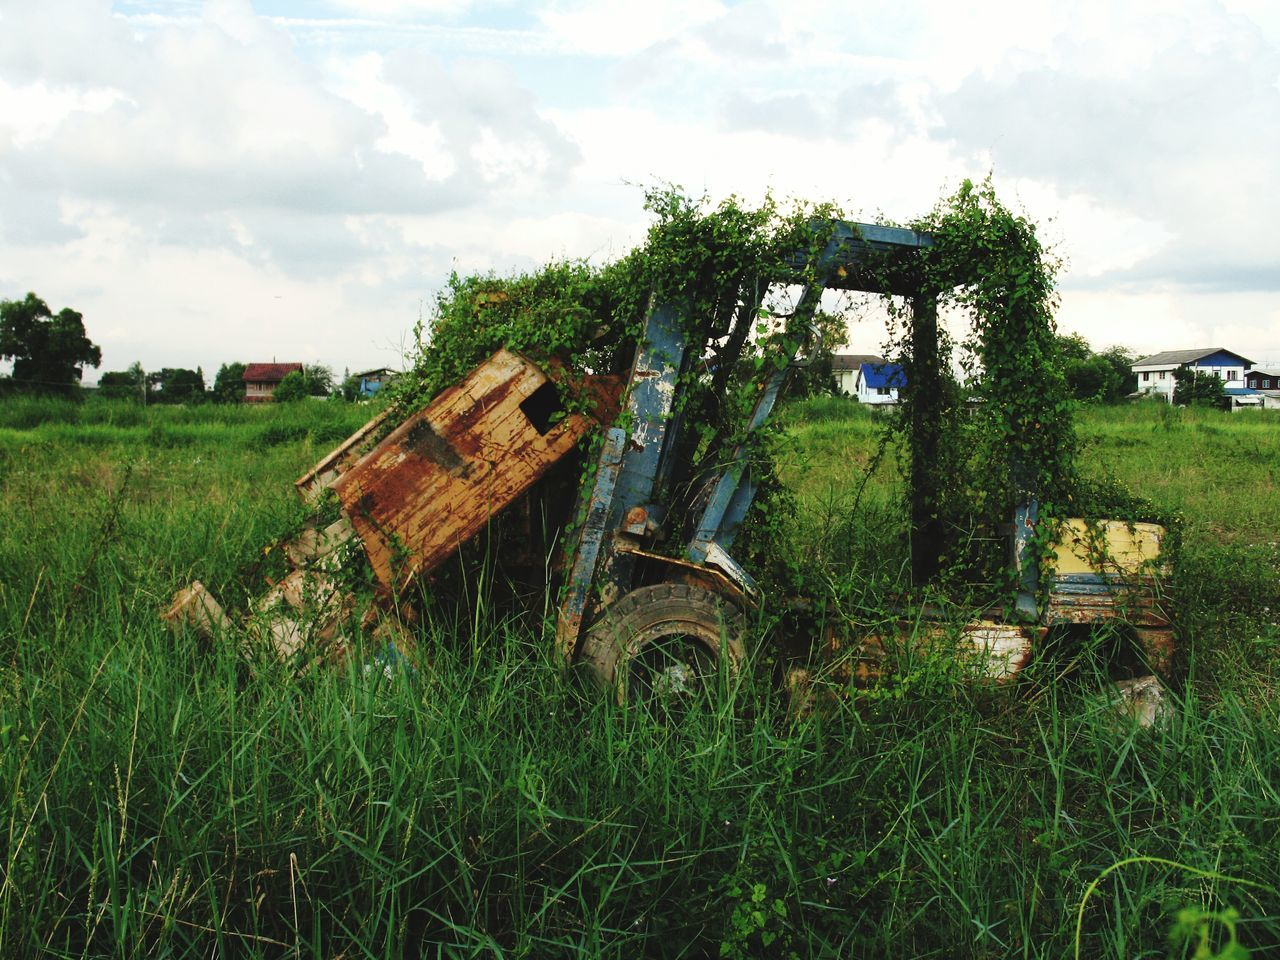 Bulldozer was Deserted in the Field for A Long Time Ago // Abandoned Rusty Outdoor